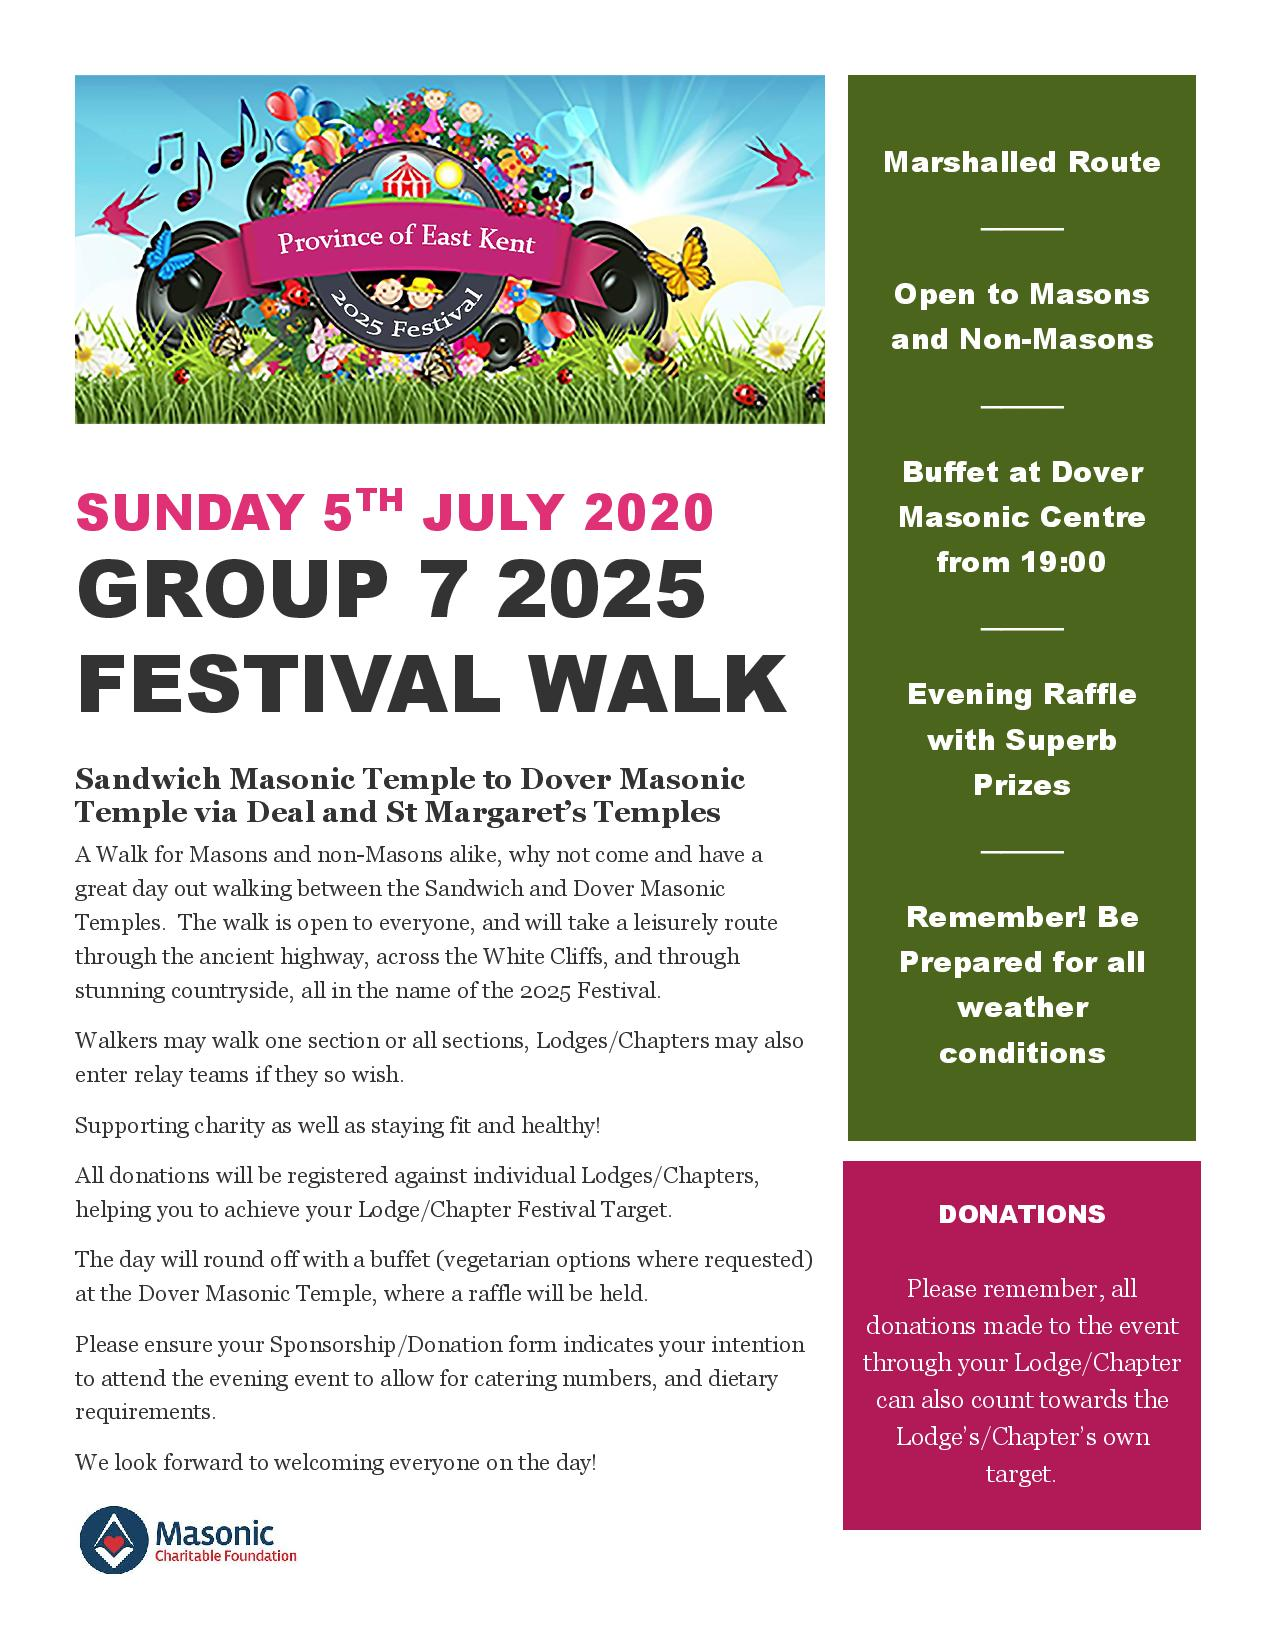 Poster advertising the Group 7 walk